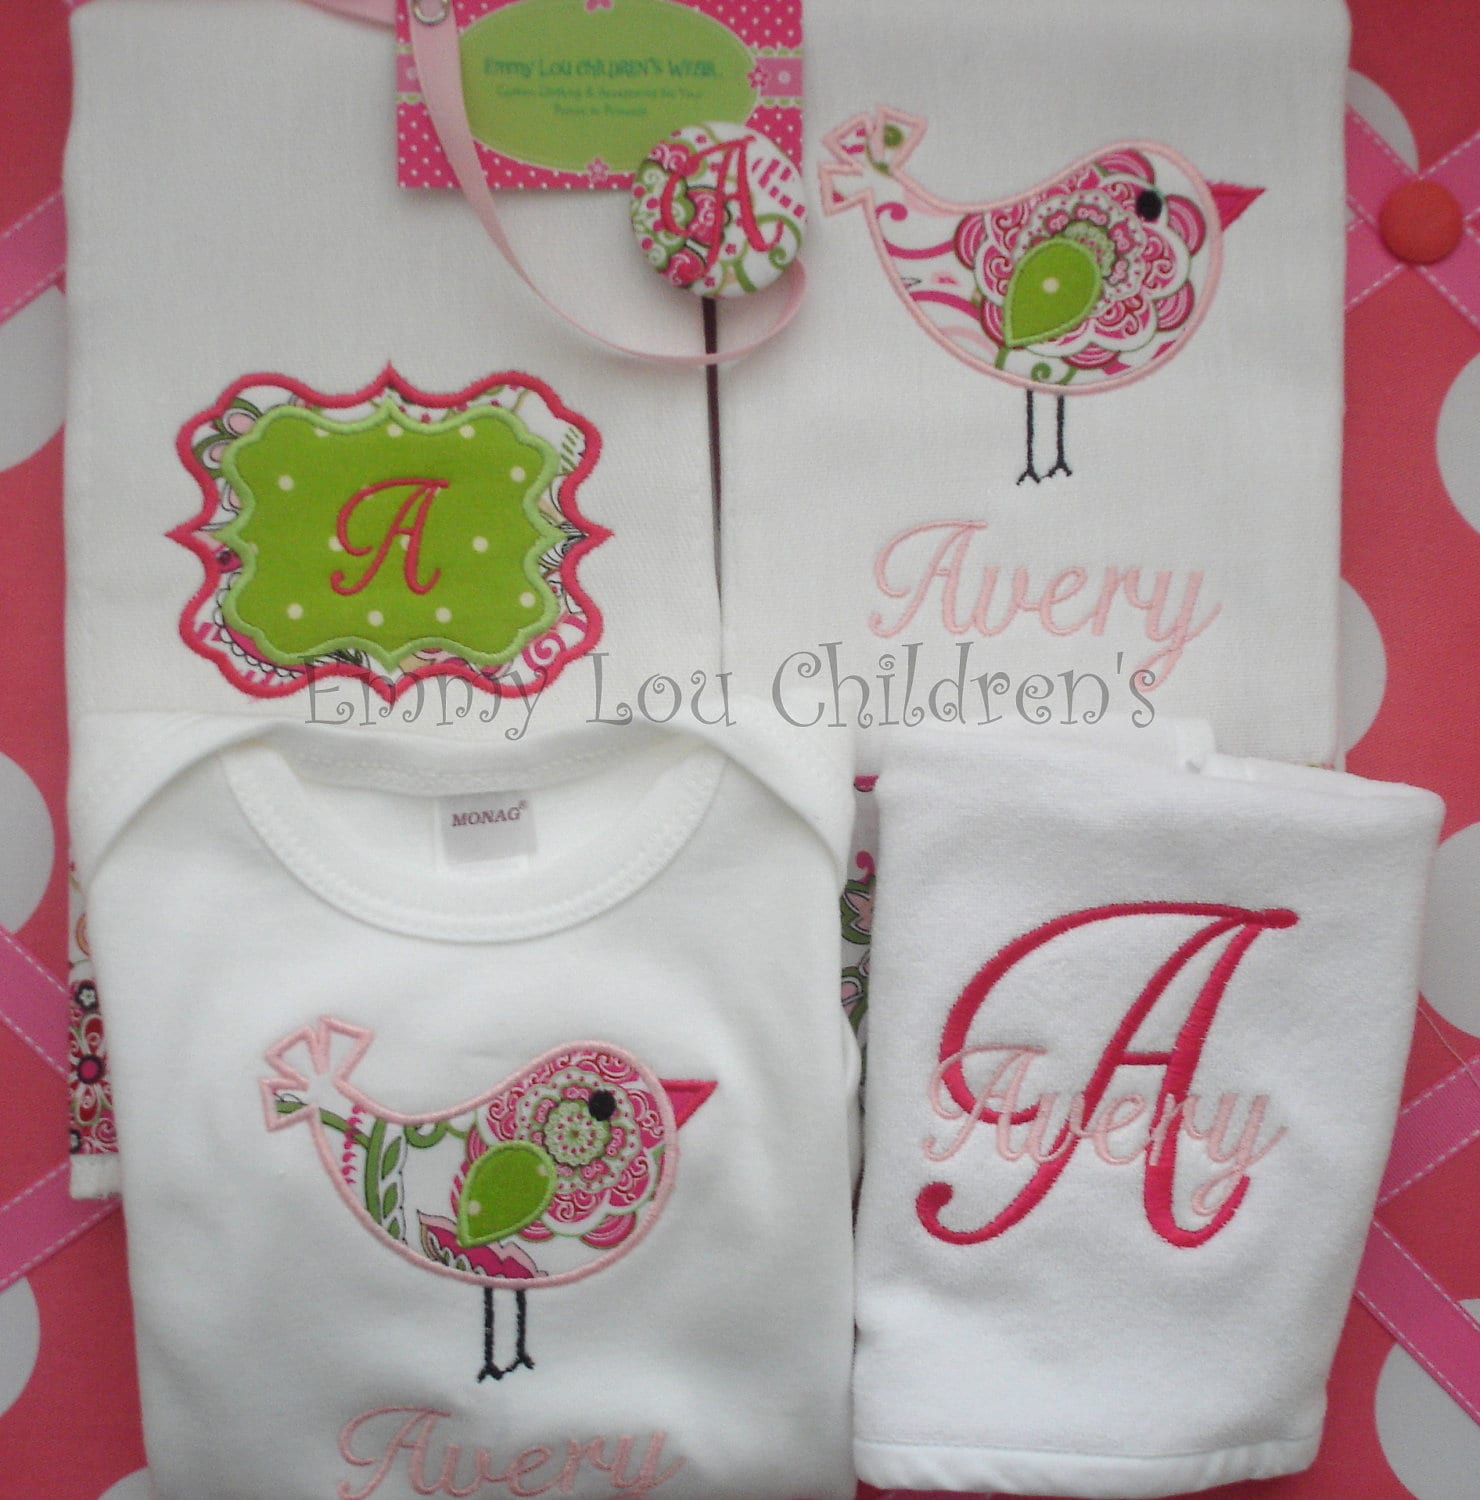 Embroidered Baby Gift Ideas : Embroidery gifts makaroka